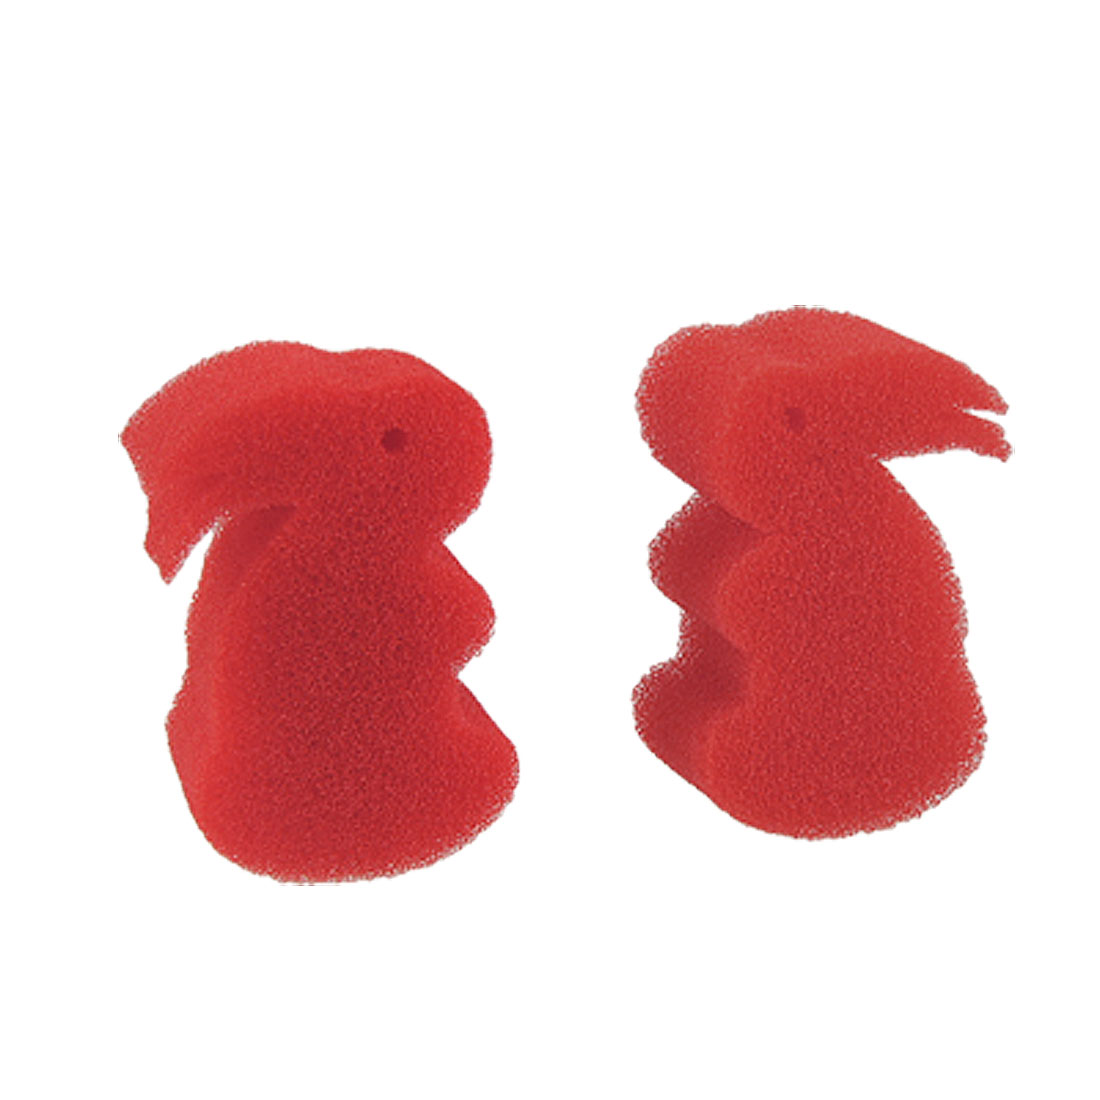 2 Packs 2 Red Sponge Lapin Hare Missing Rabbit Magic Conjuring Trick Toy